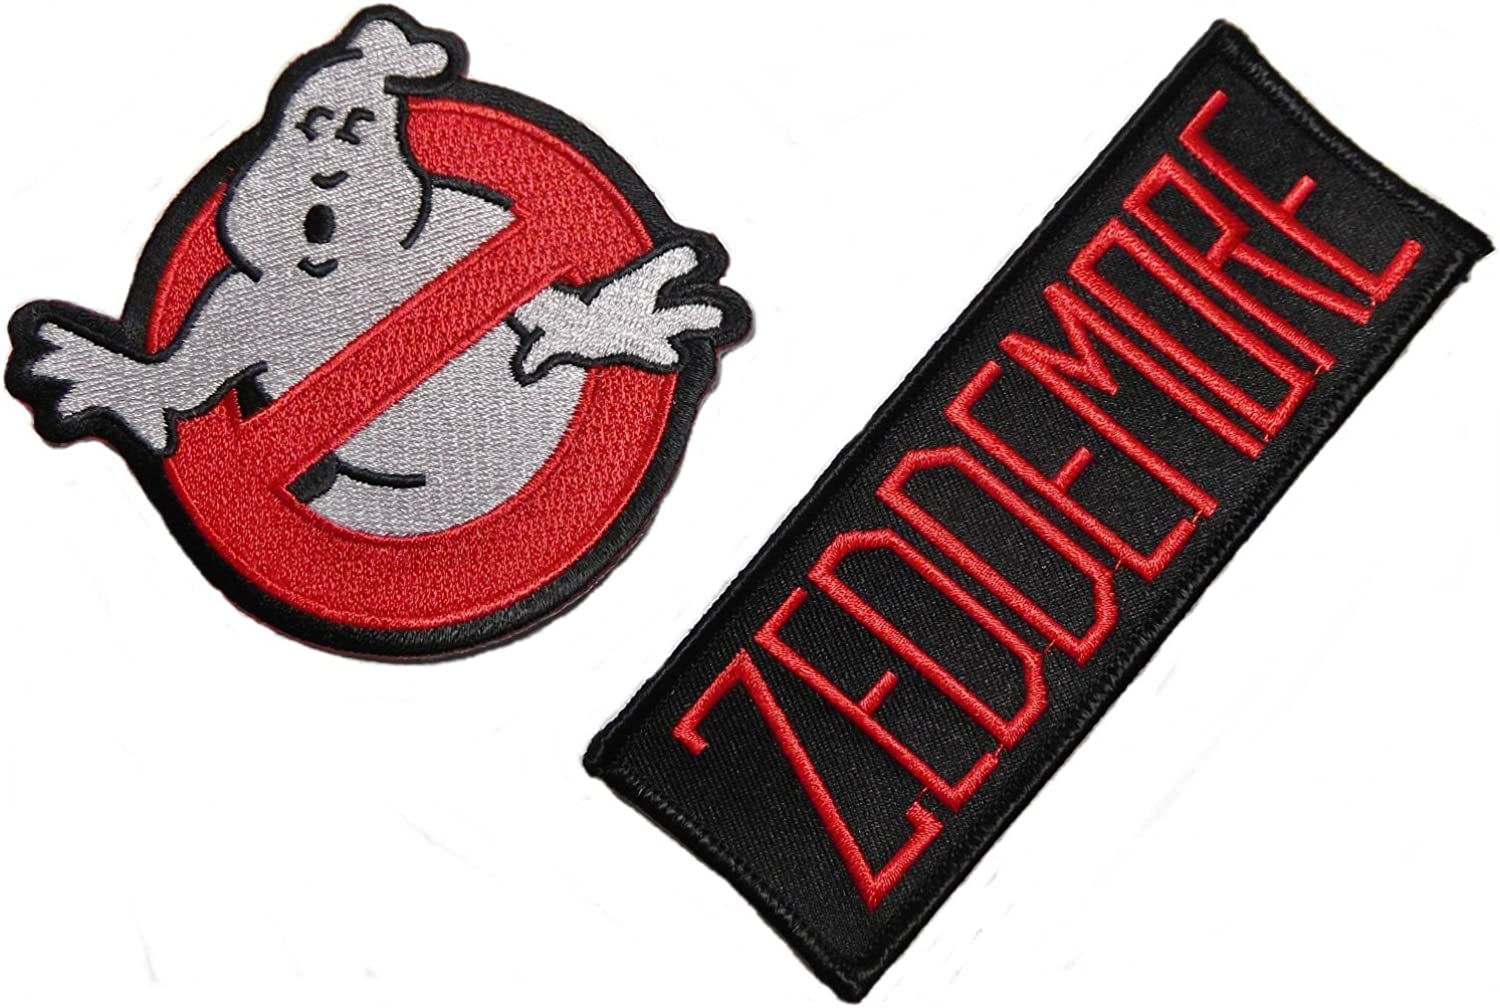 Ghostbusters Zeddemore Red on Black Name Tag with No Ghost Patch Set of 2